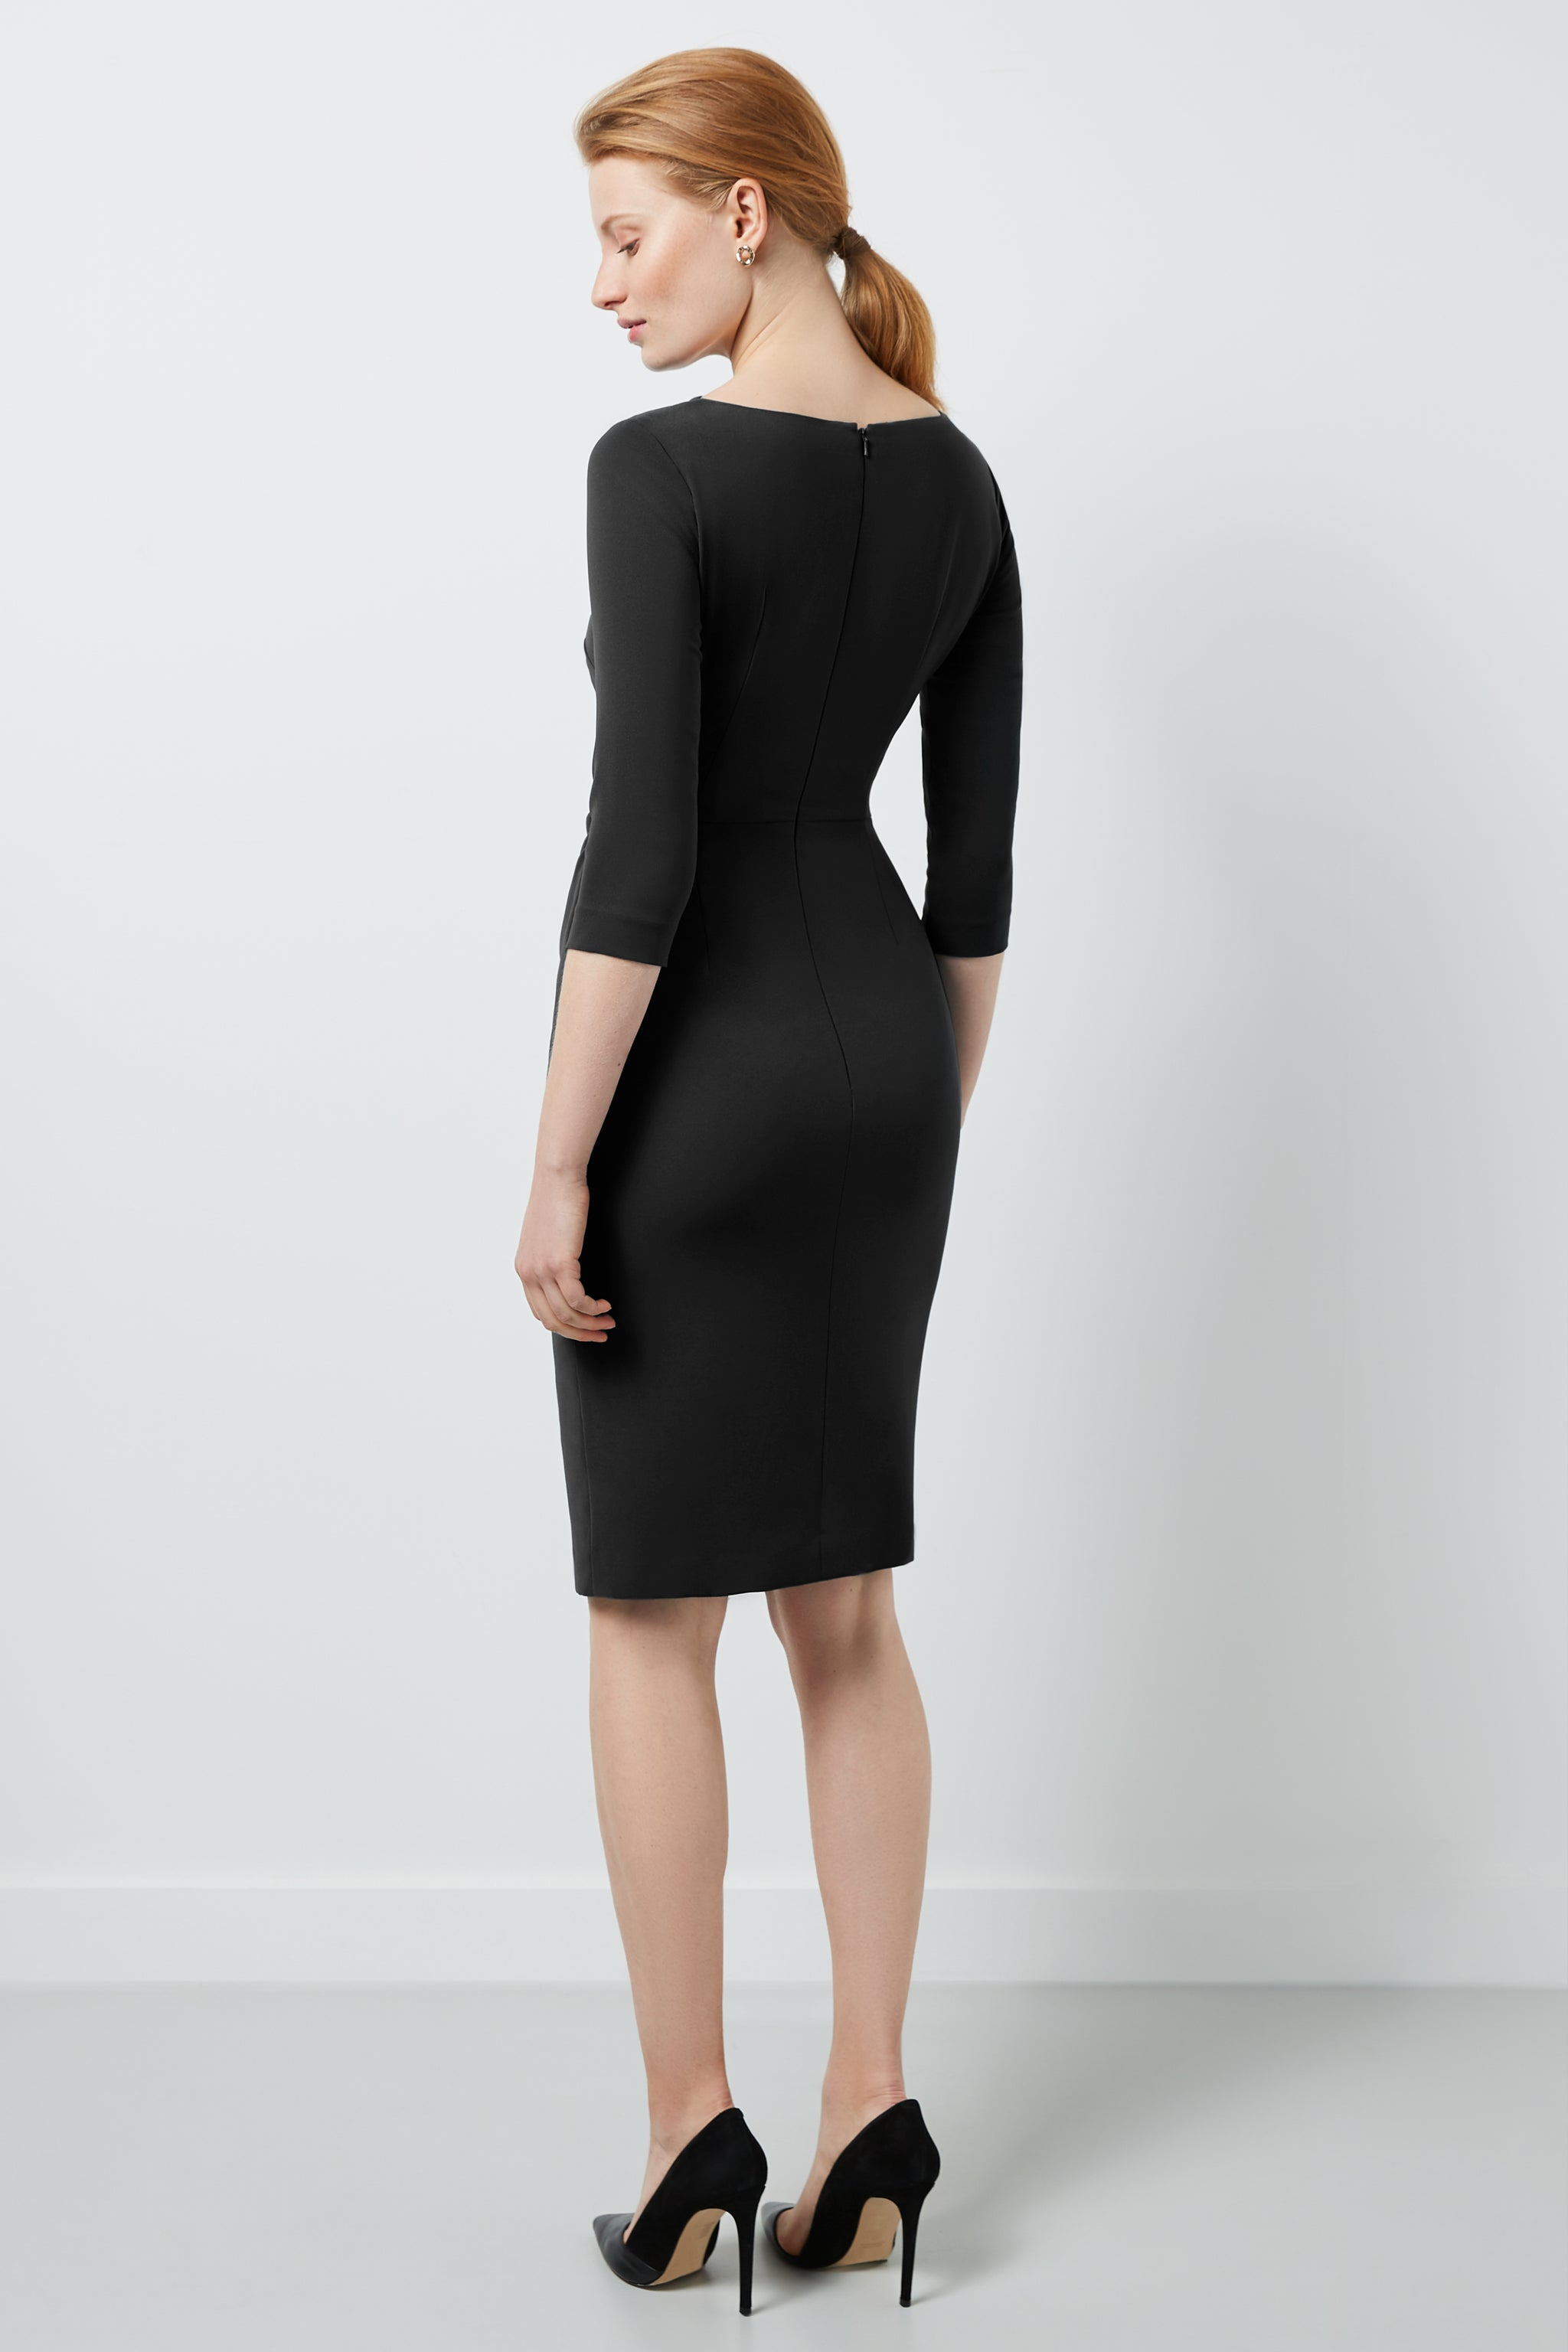 Tiverton Black Dress